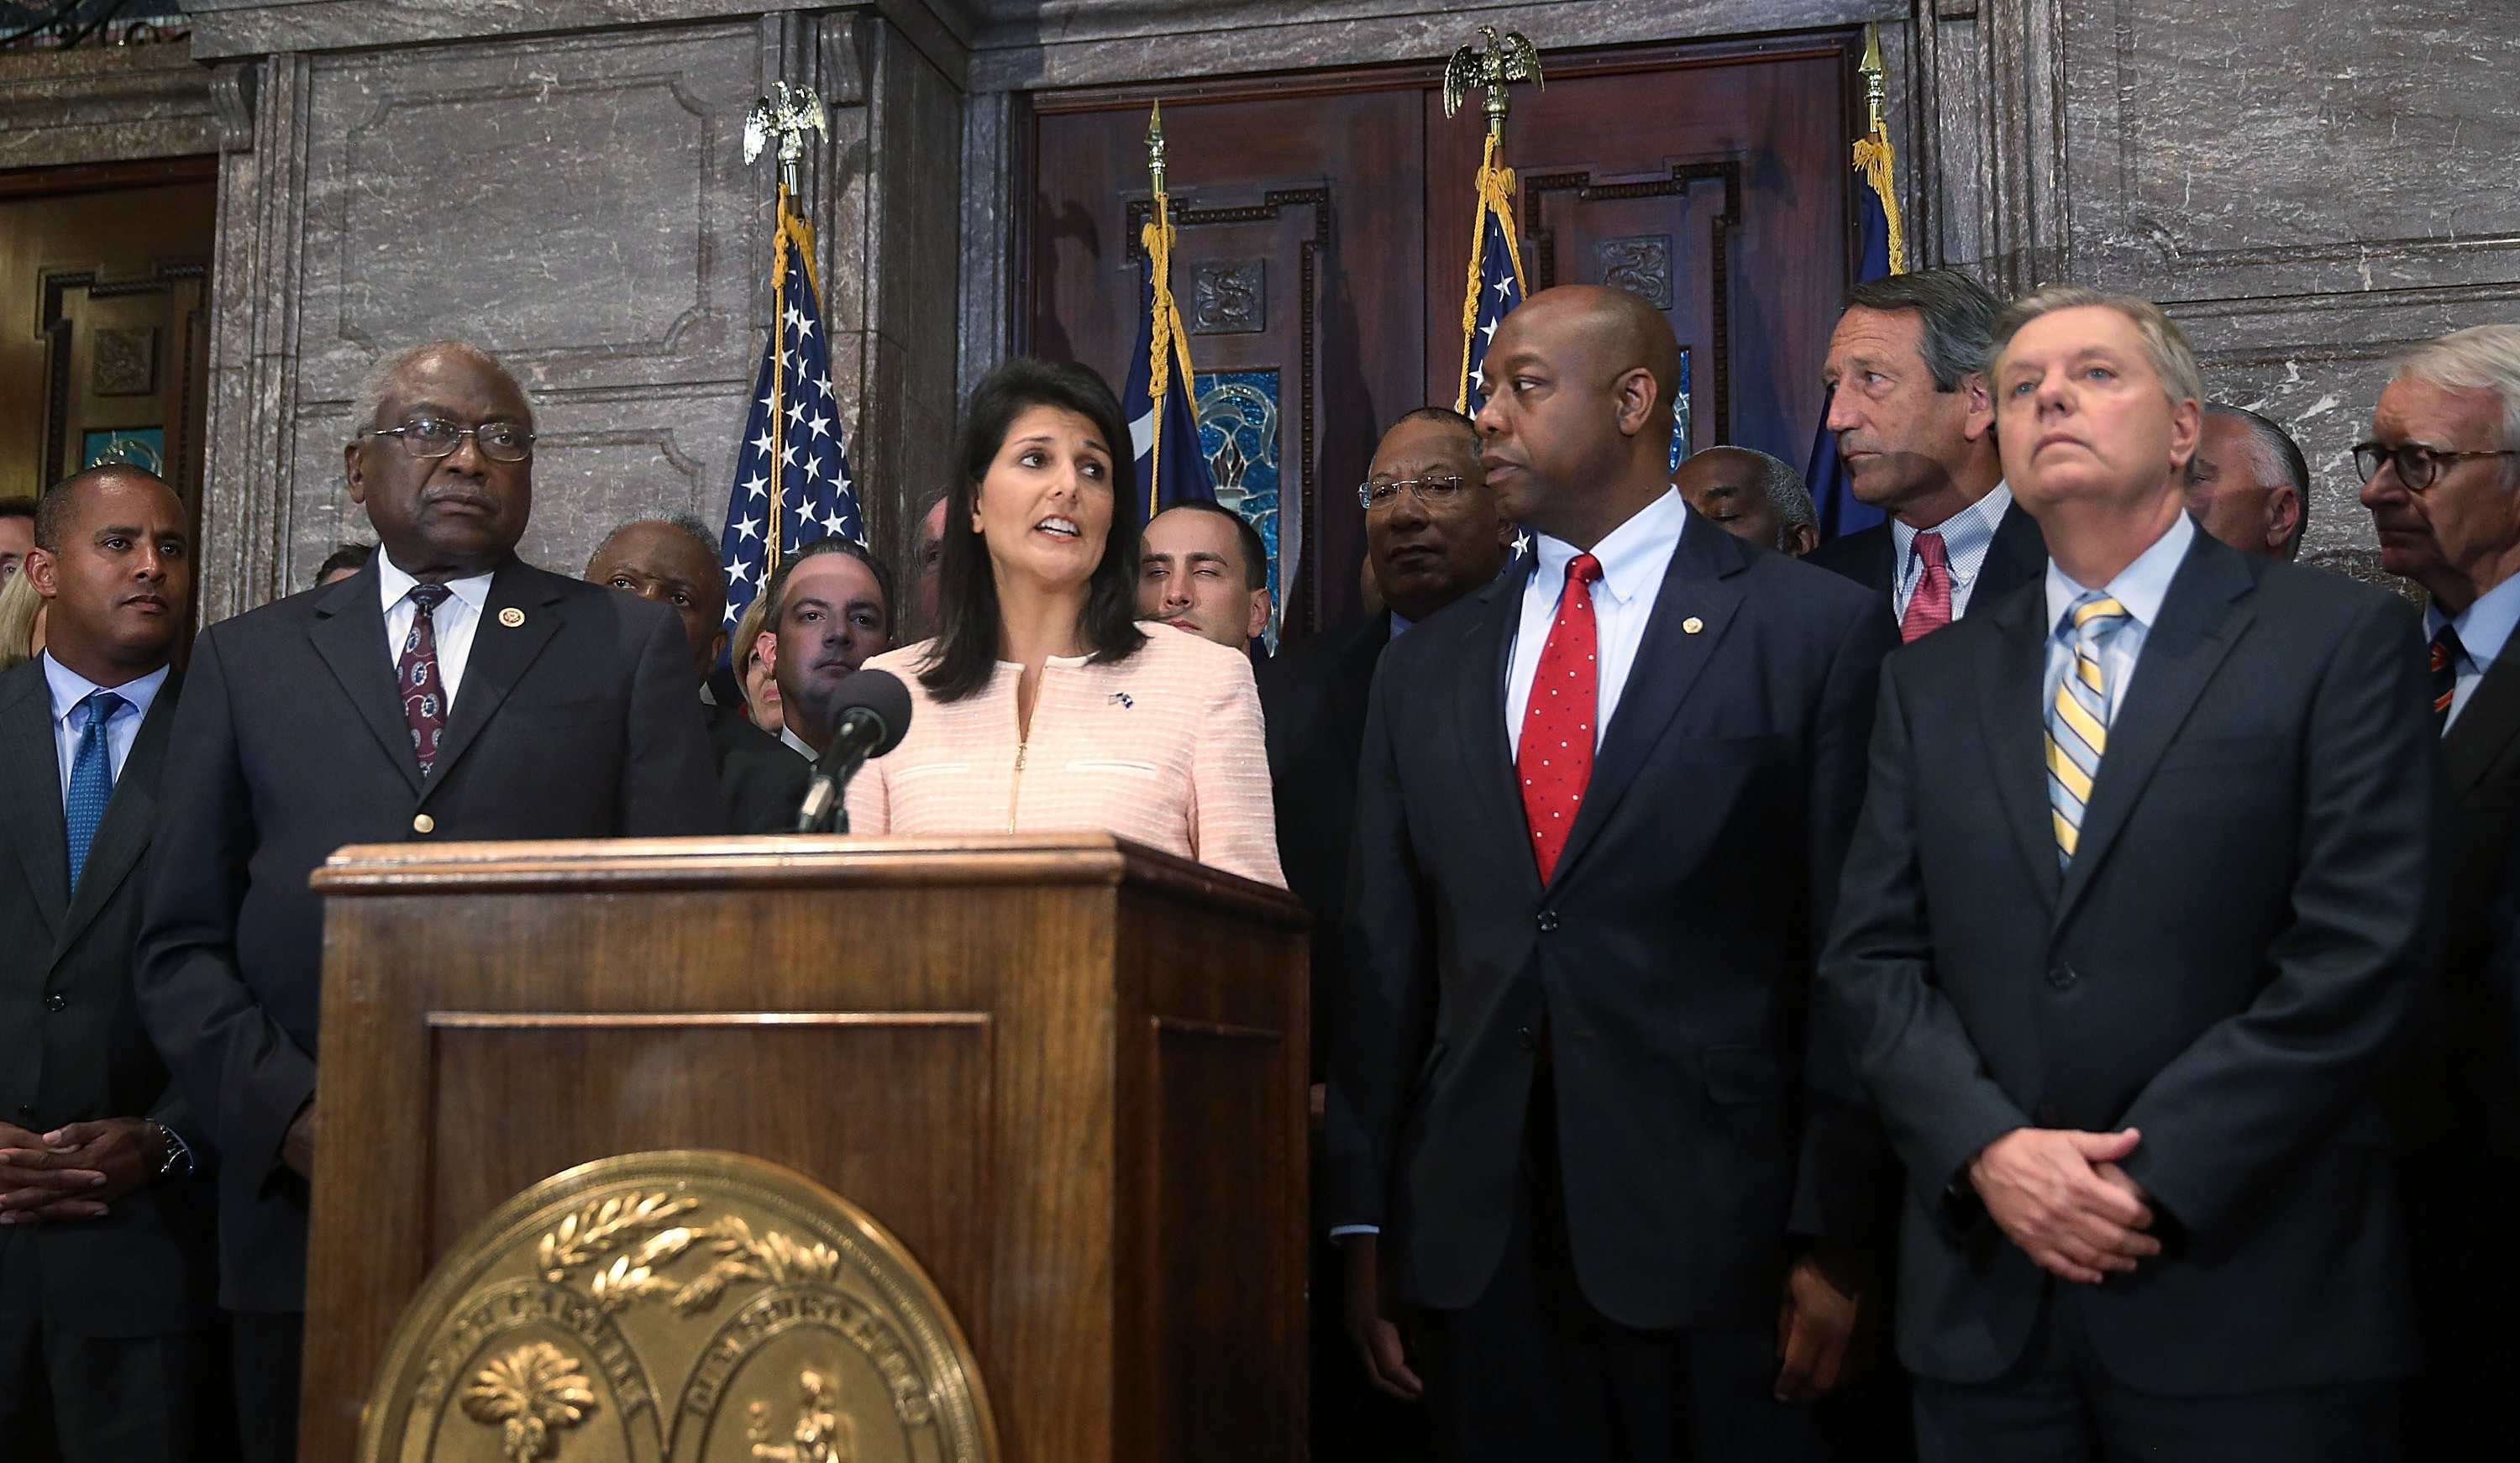 In June, South Carolina Gov. Nikki Haley along with Sens. Tim Scott and Lindsey Graham (right, far right) and other lawmakers and activists called for the Confederate flag to be moved from state Capitol grounds. Joe Raedle/Getty Images